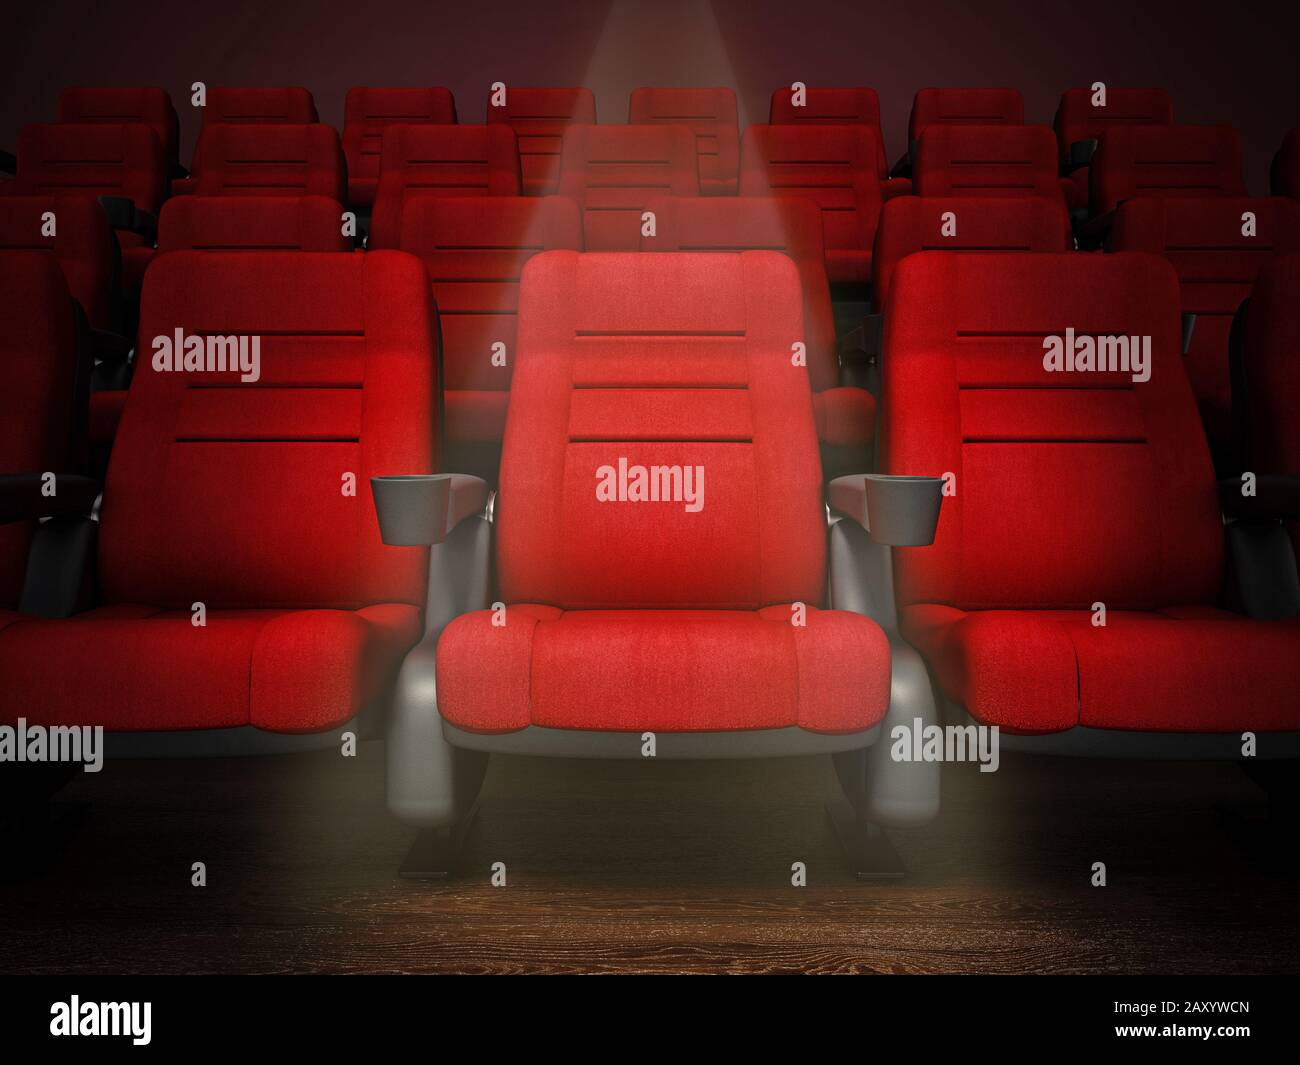 Cinema Auditorium Interior 3d Render High Resolution Stock Photography And Images Alamy